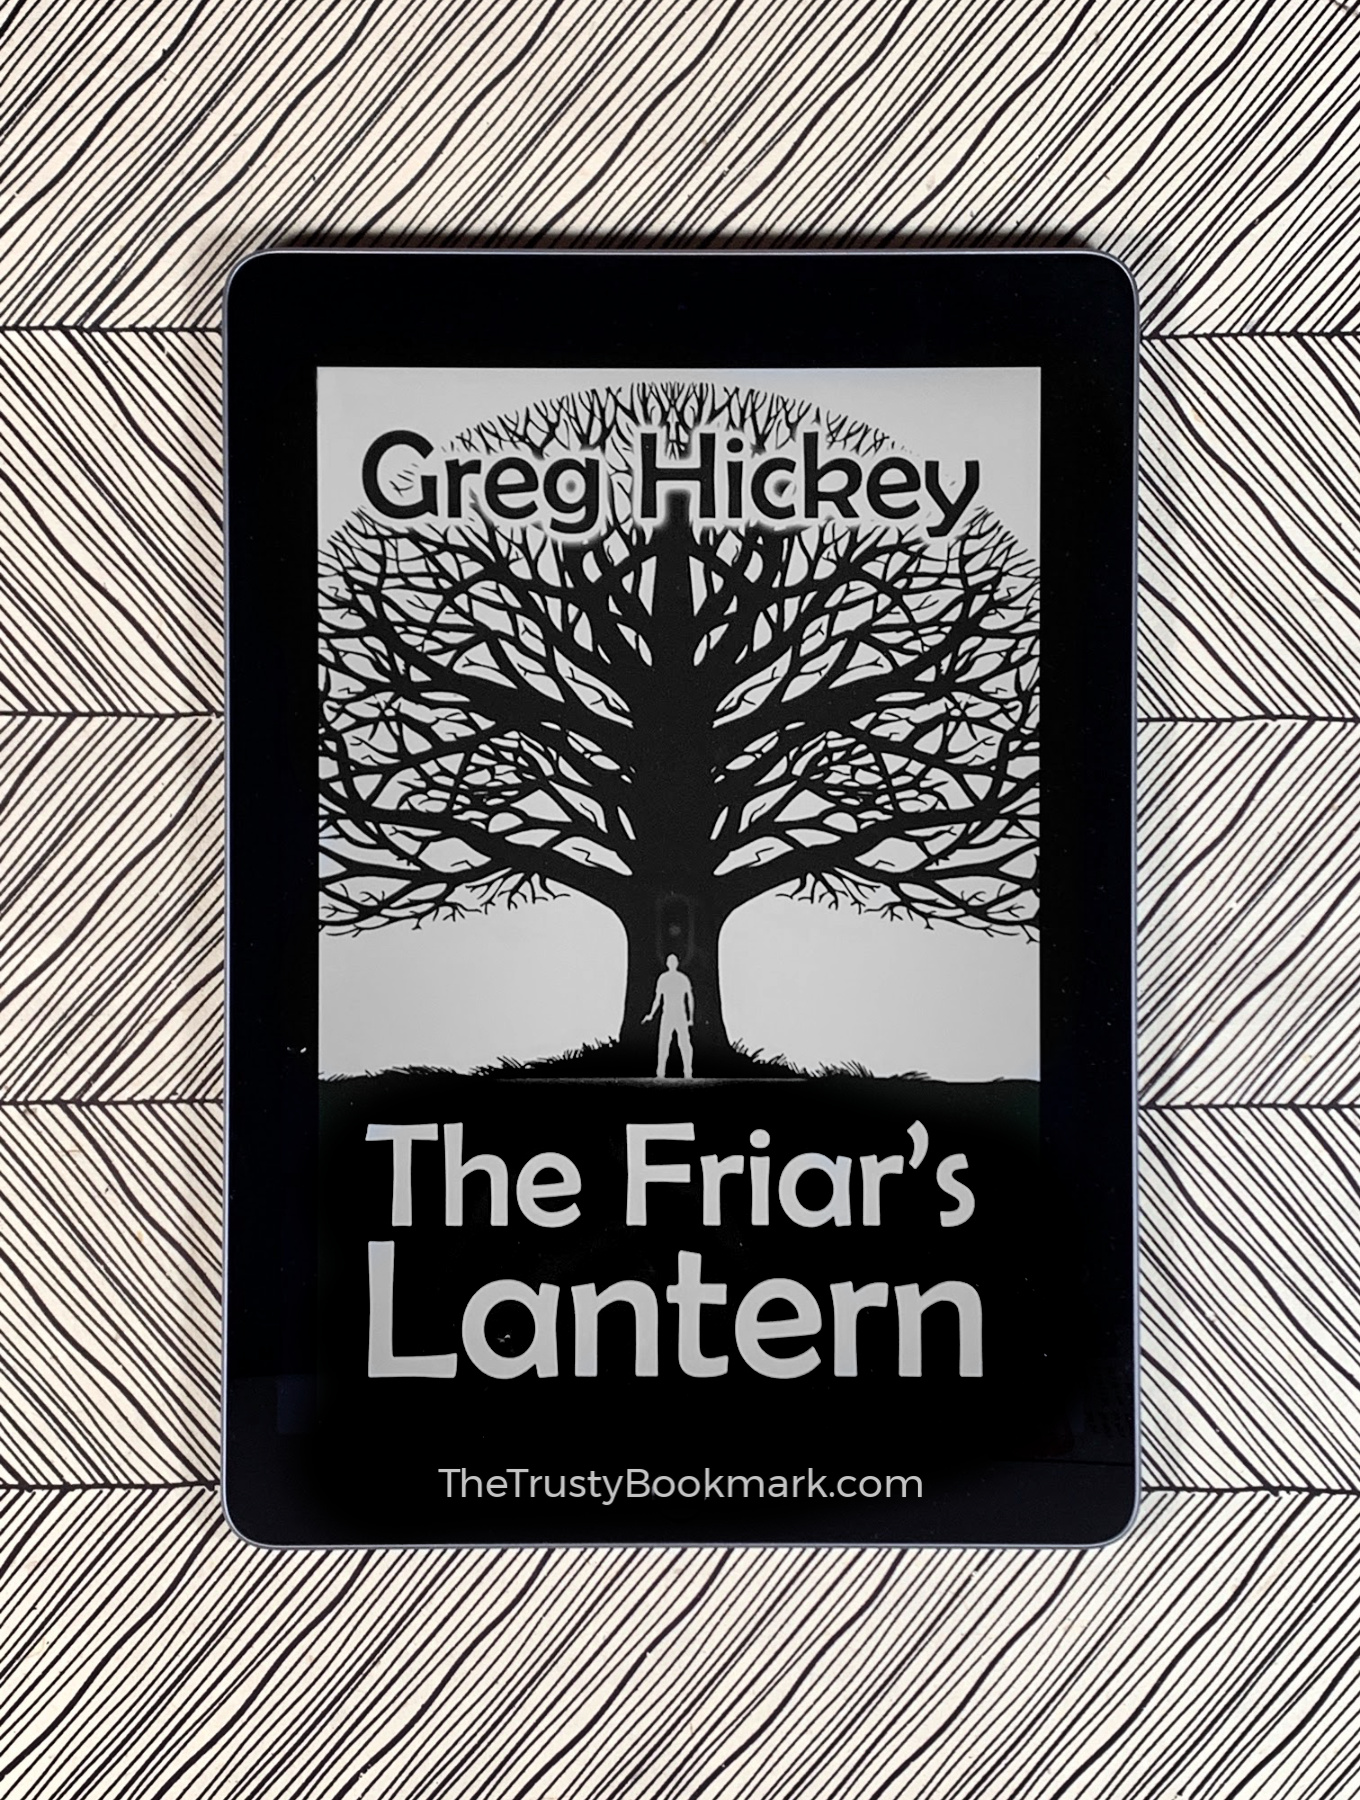 Book Review: The Friar's Lantern [The Trusty Bookmark]